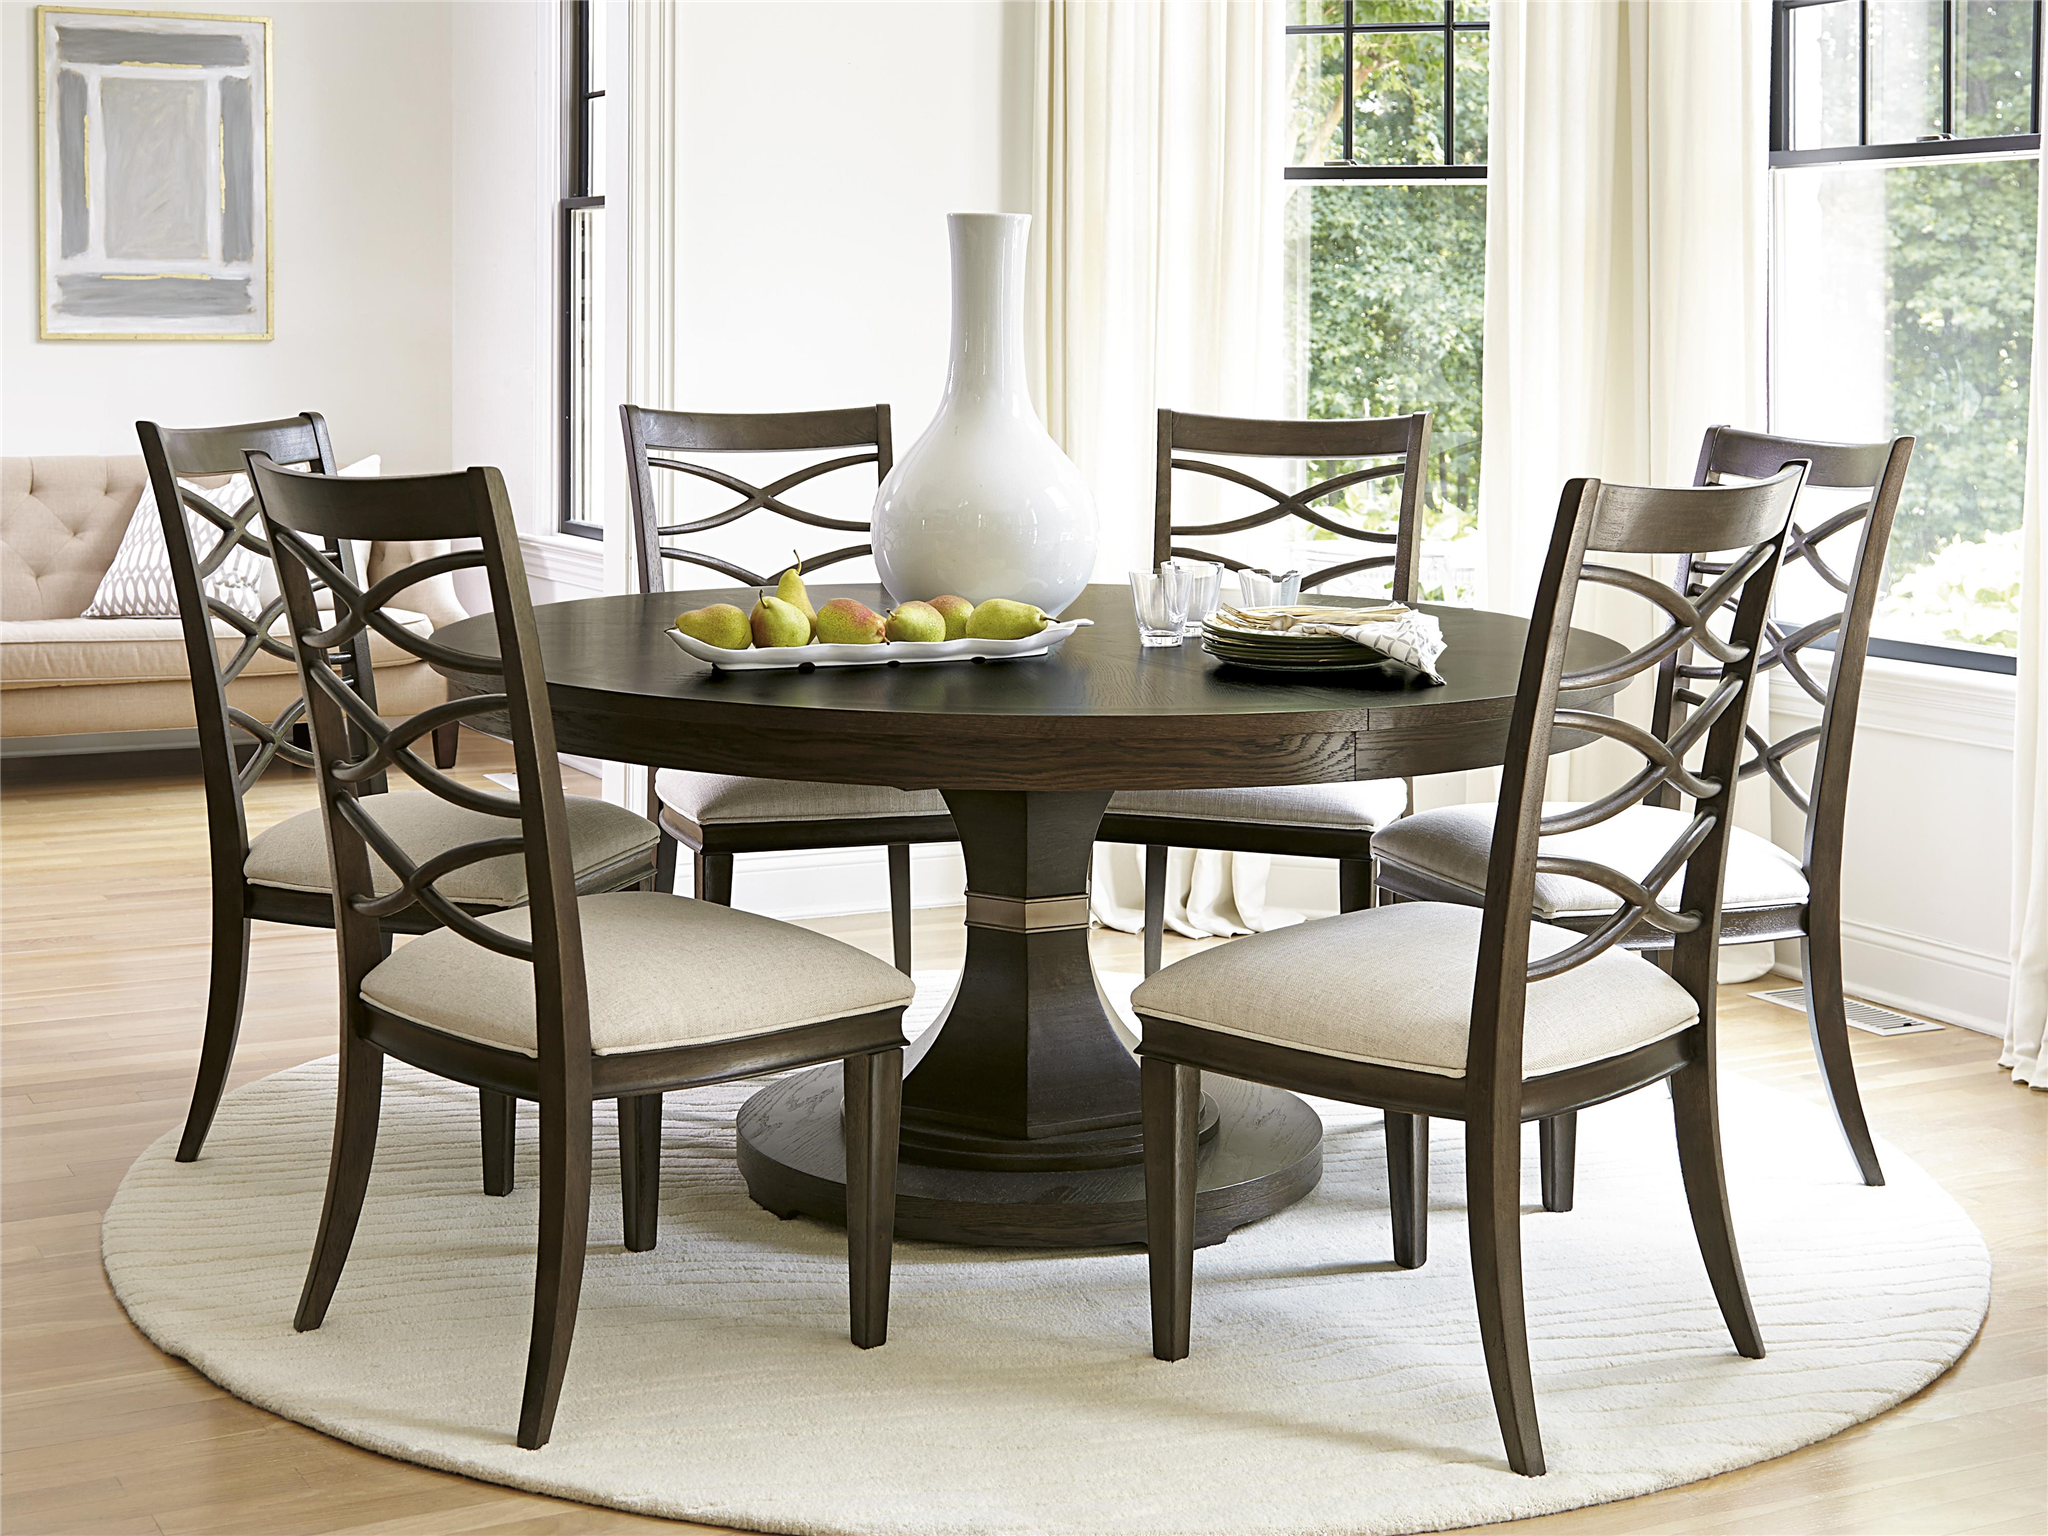 round dining table 1 round kitchen table